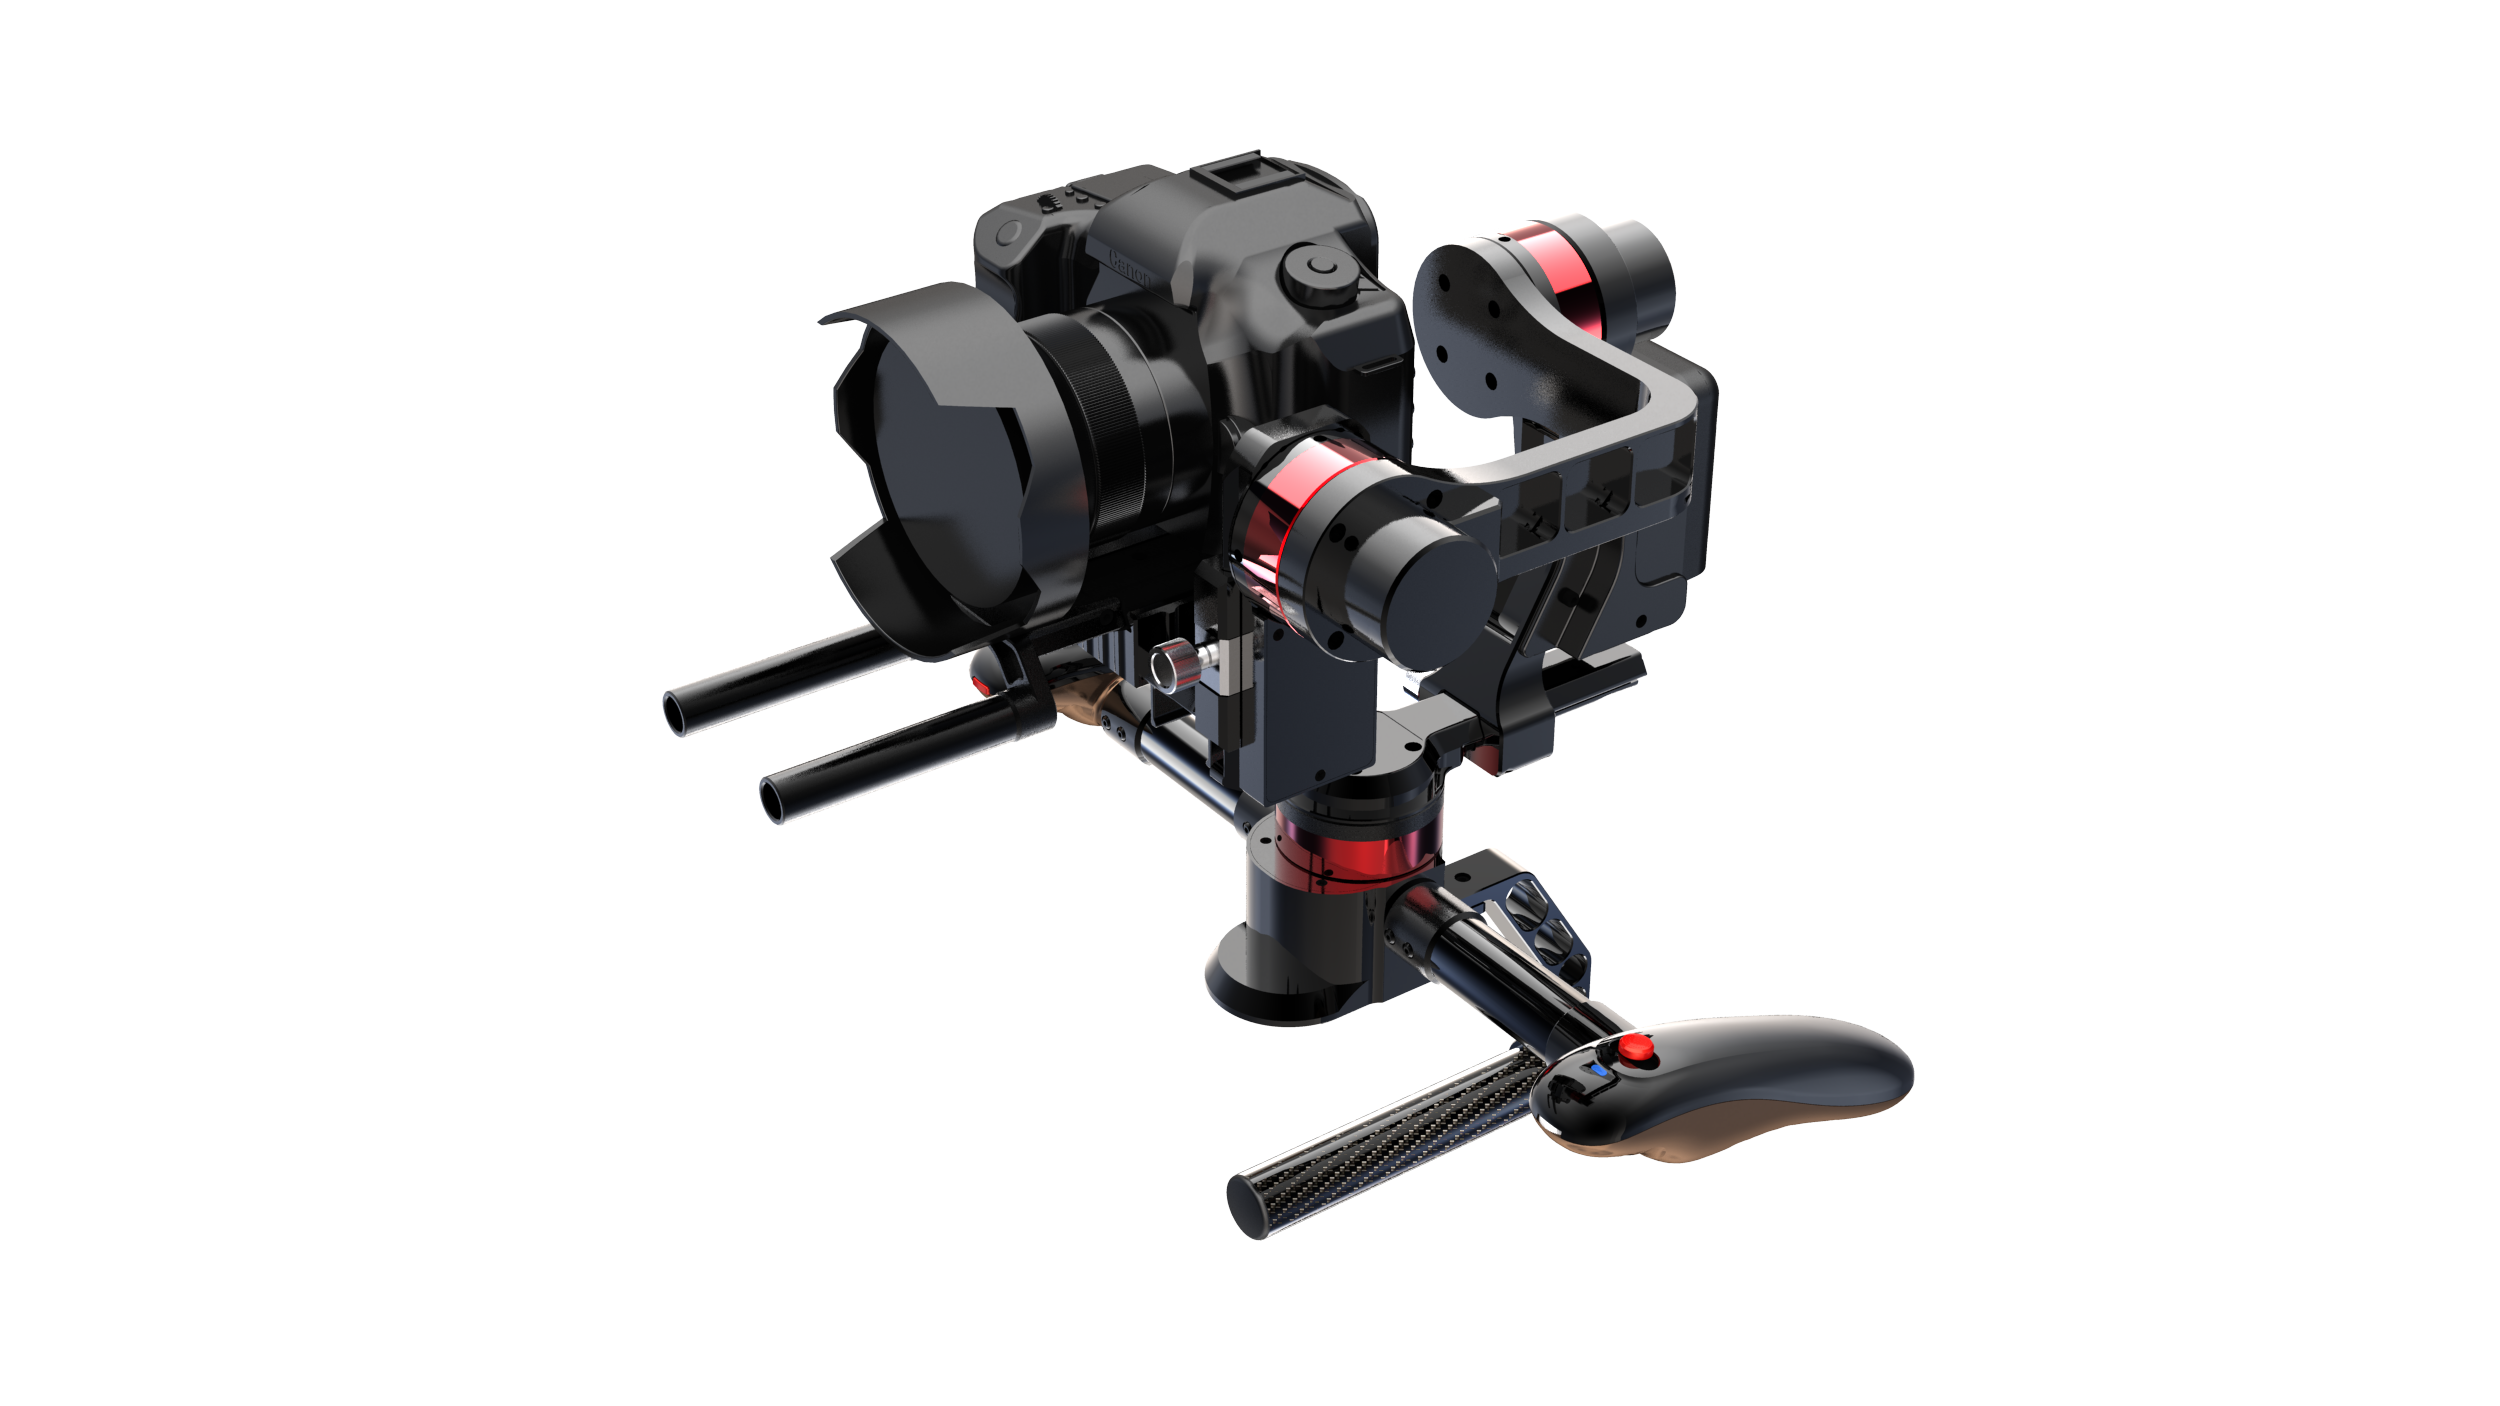 smooth video gimbal stabilizer